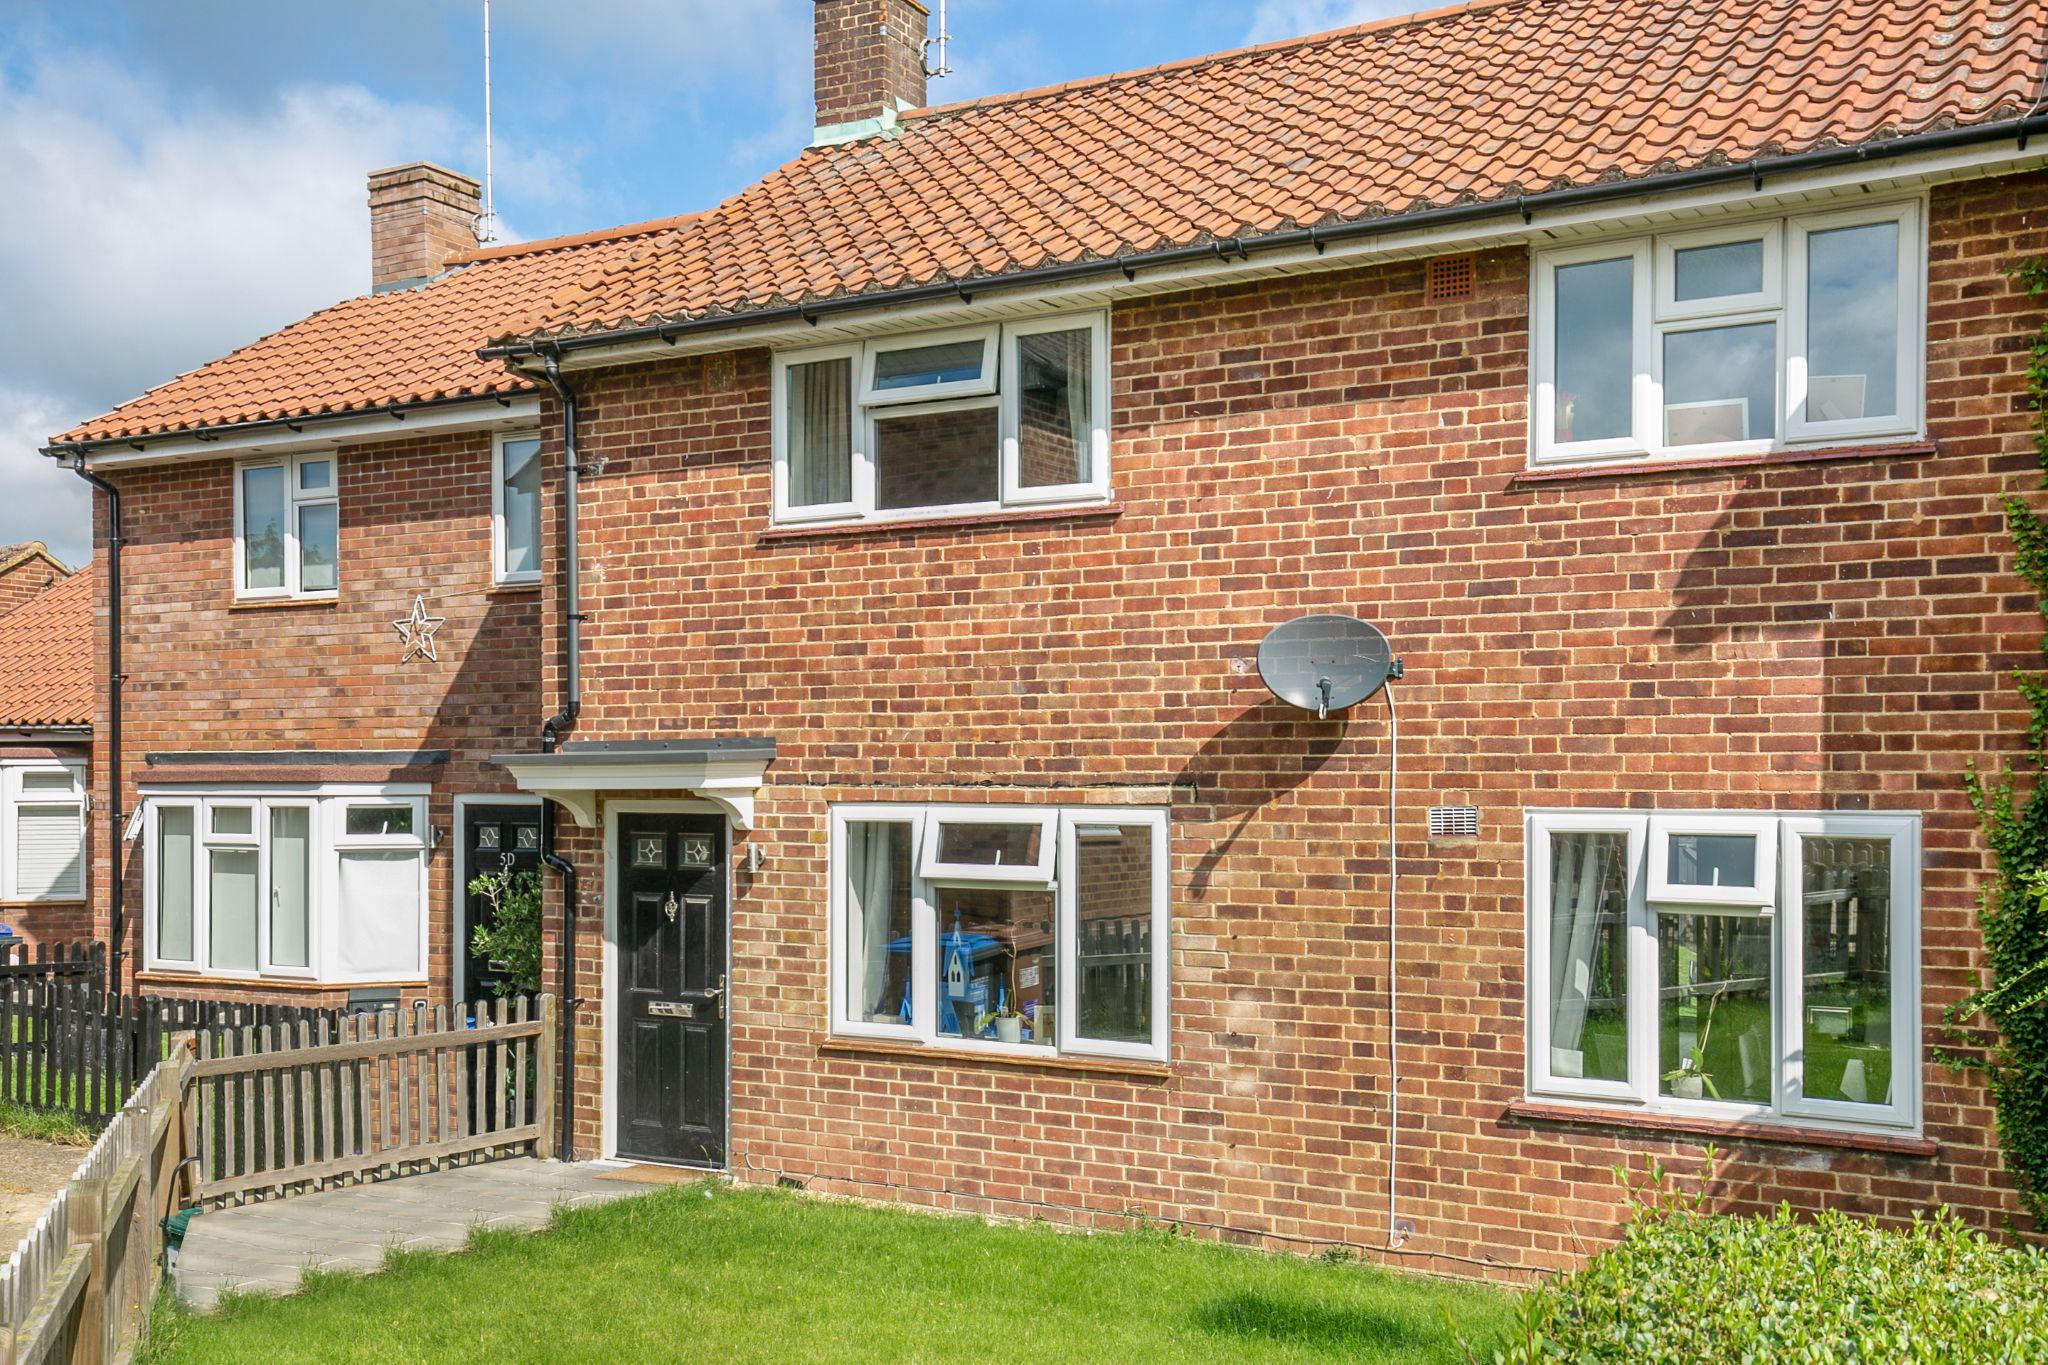 3 bedroom mid terraced house For Sale in Hatfield - Photograph 12